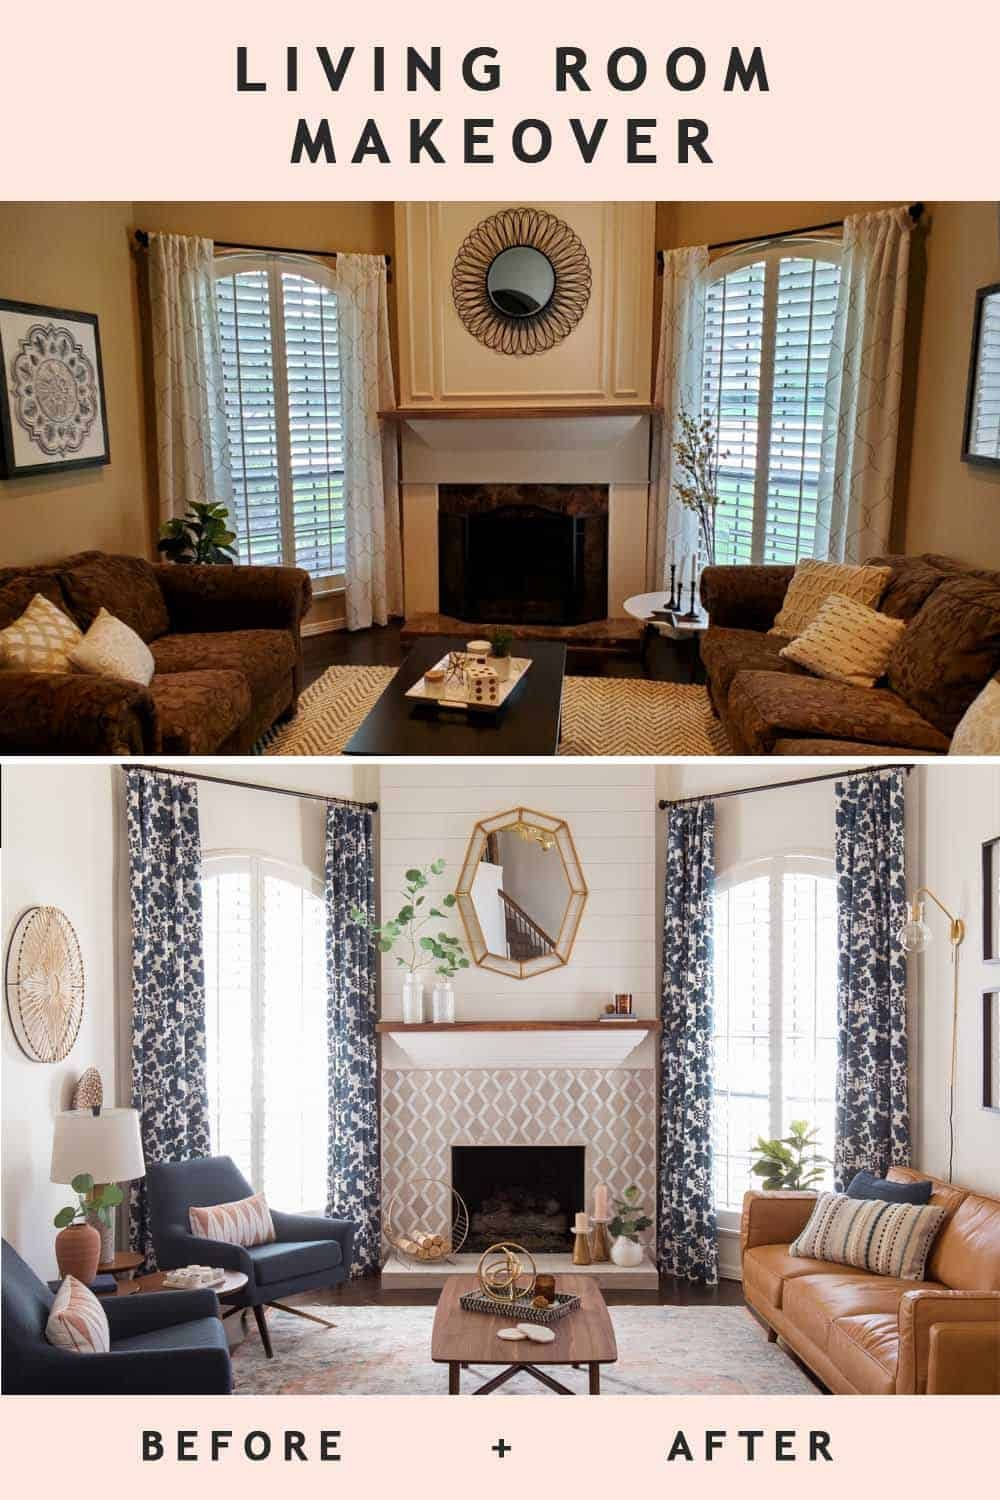 Before After A Transitional Living Room Makeover Transitional Living Rooms Living Room Makeover Home